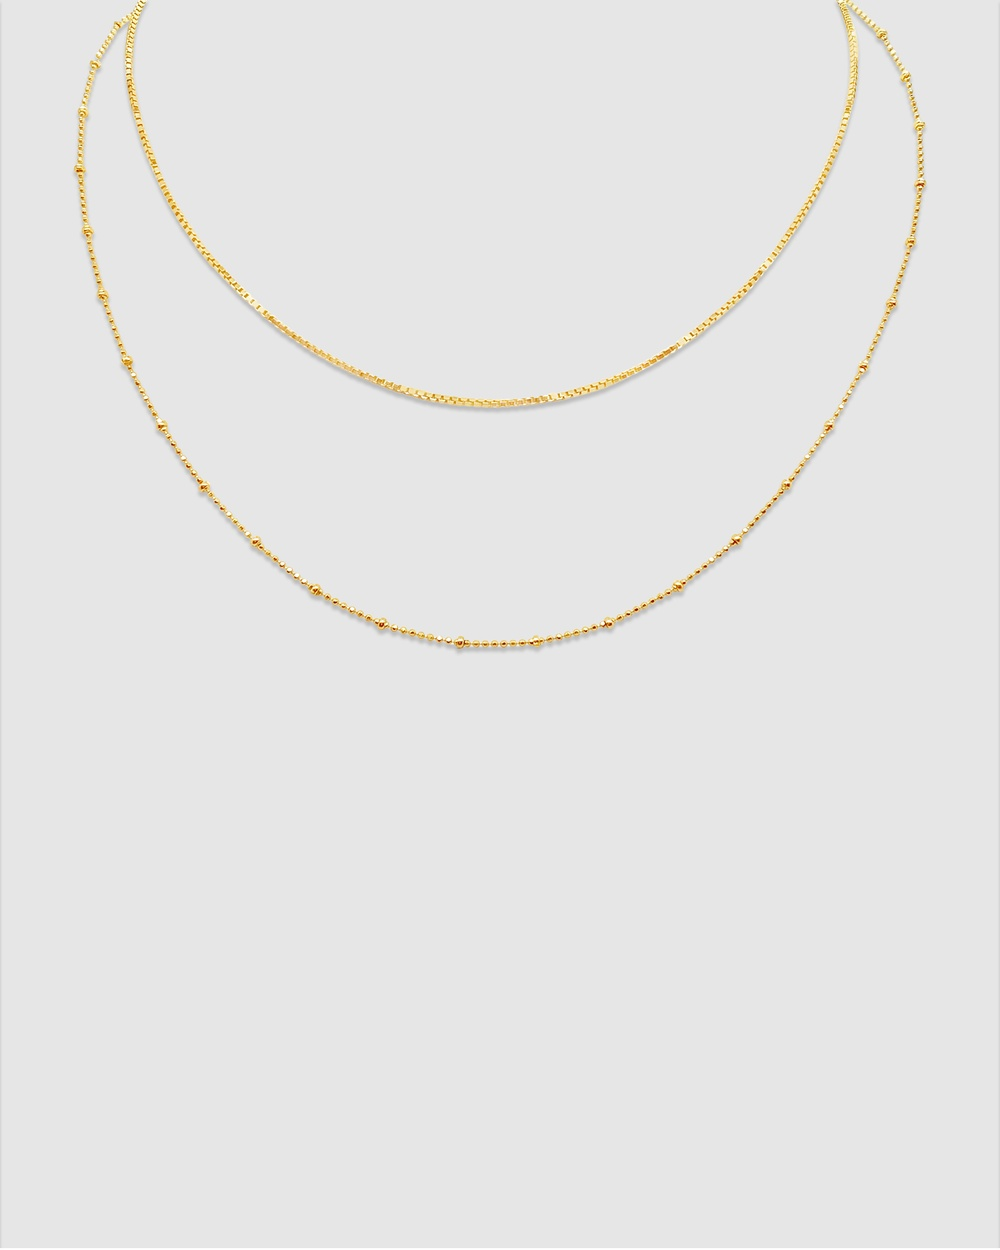 Ichu Layers Necklace, Gold Jewellery Gold Plated